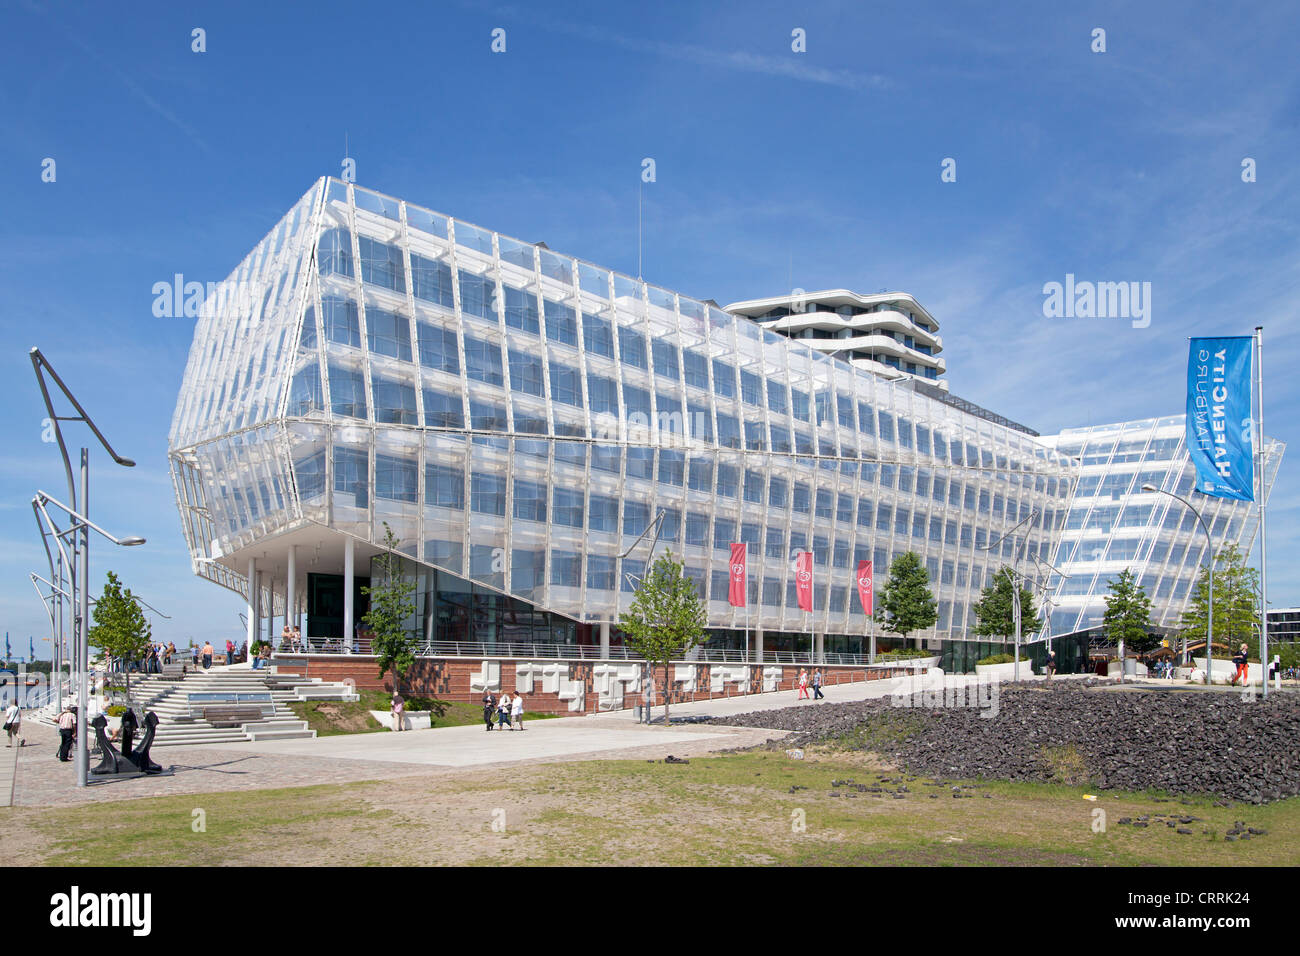 Unilever House and Marco Polo Tower, Harbour City, Hamburg, Germany - Stock Image